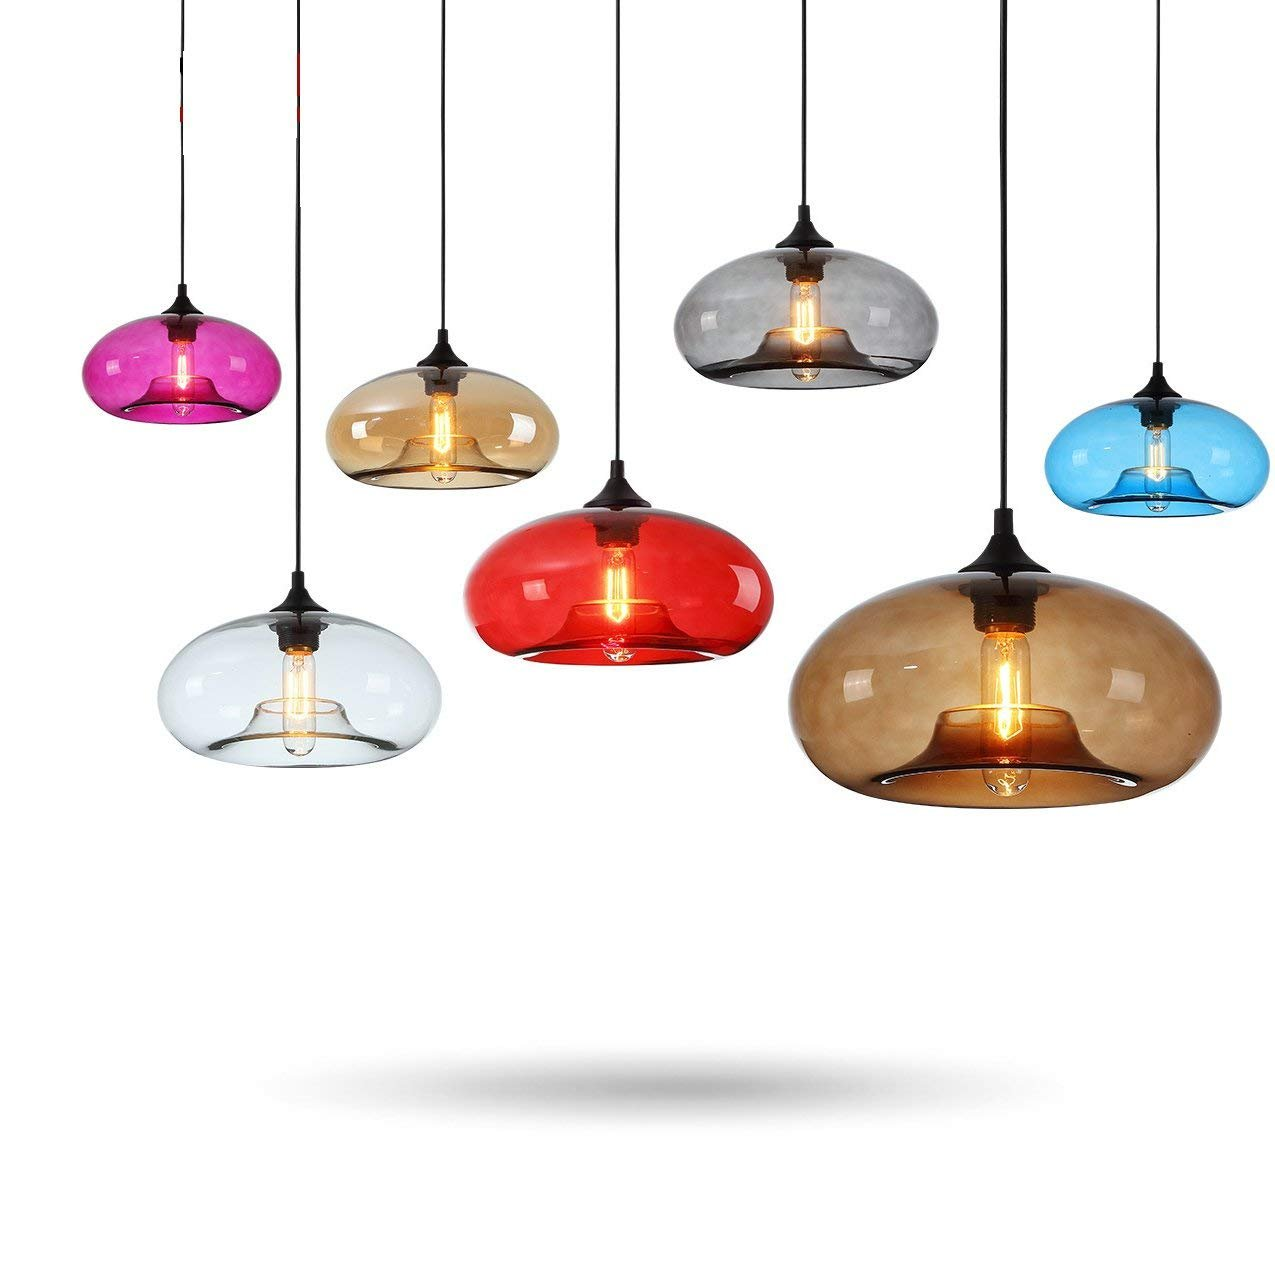 Ting-w Vintage E27 Pendant Ceiling Hanging Light Glass Shade (Amber)